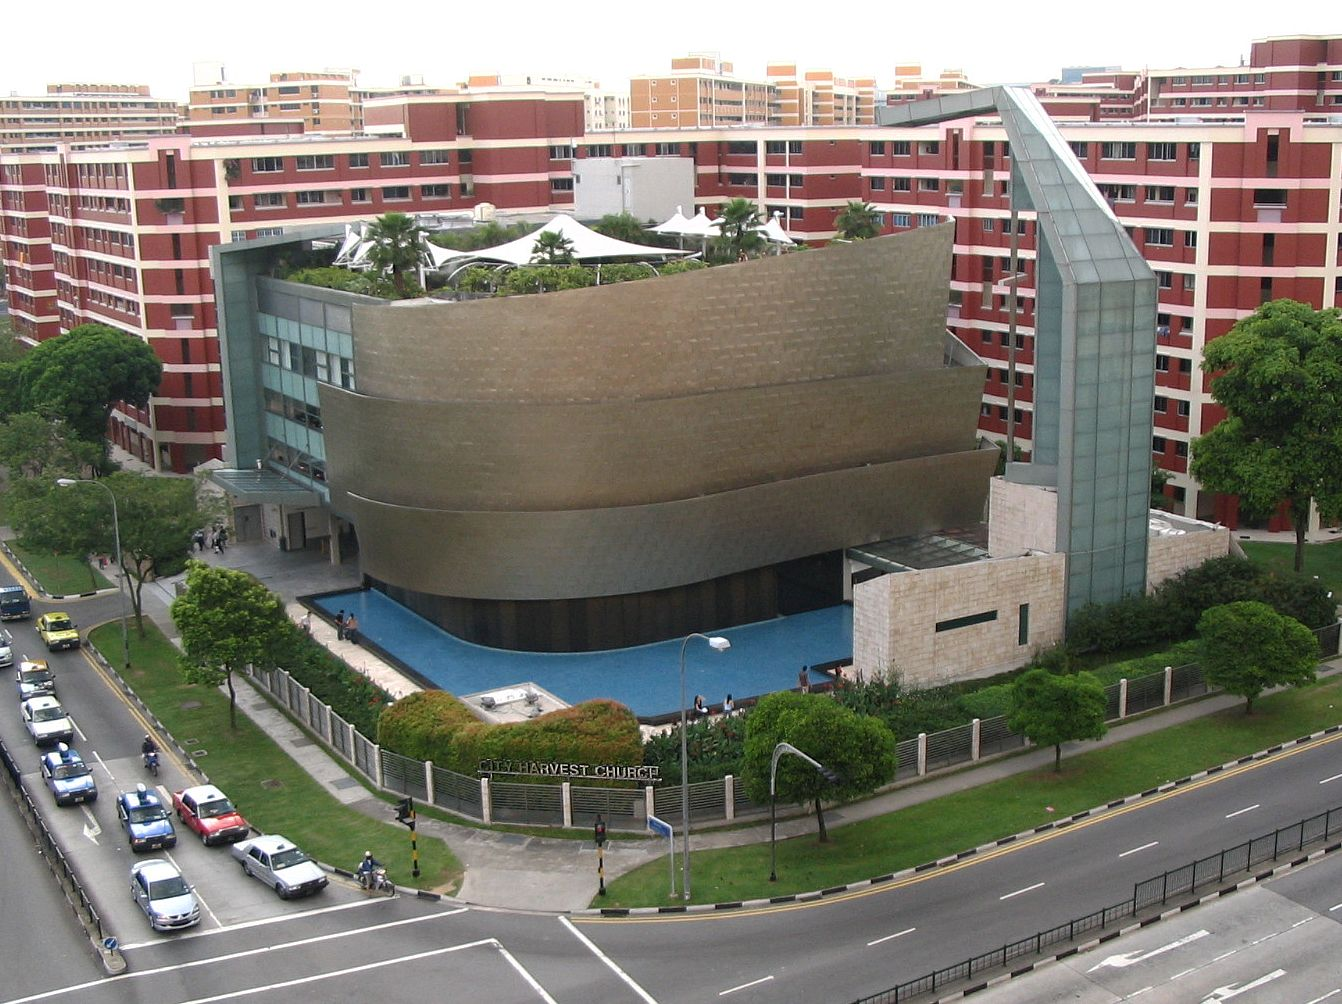 File:CITY HARVEST CHURCH Jurong West Building.jpg - Wikimedia Commons